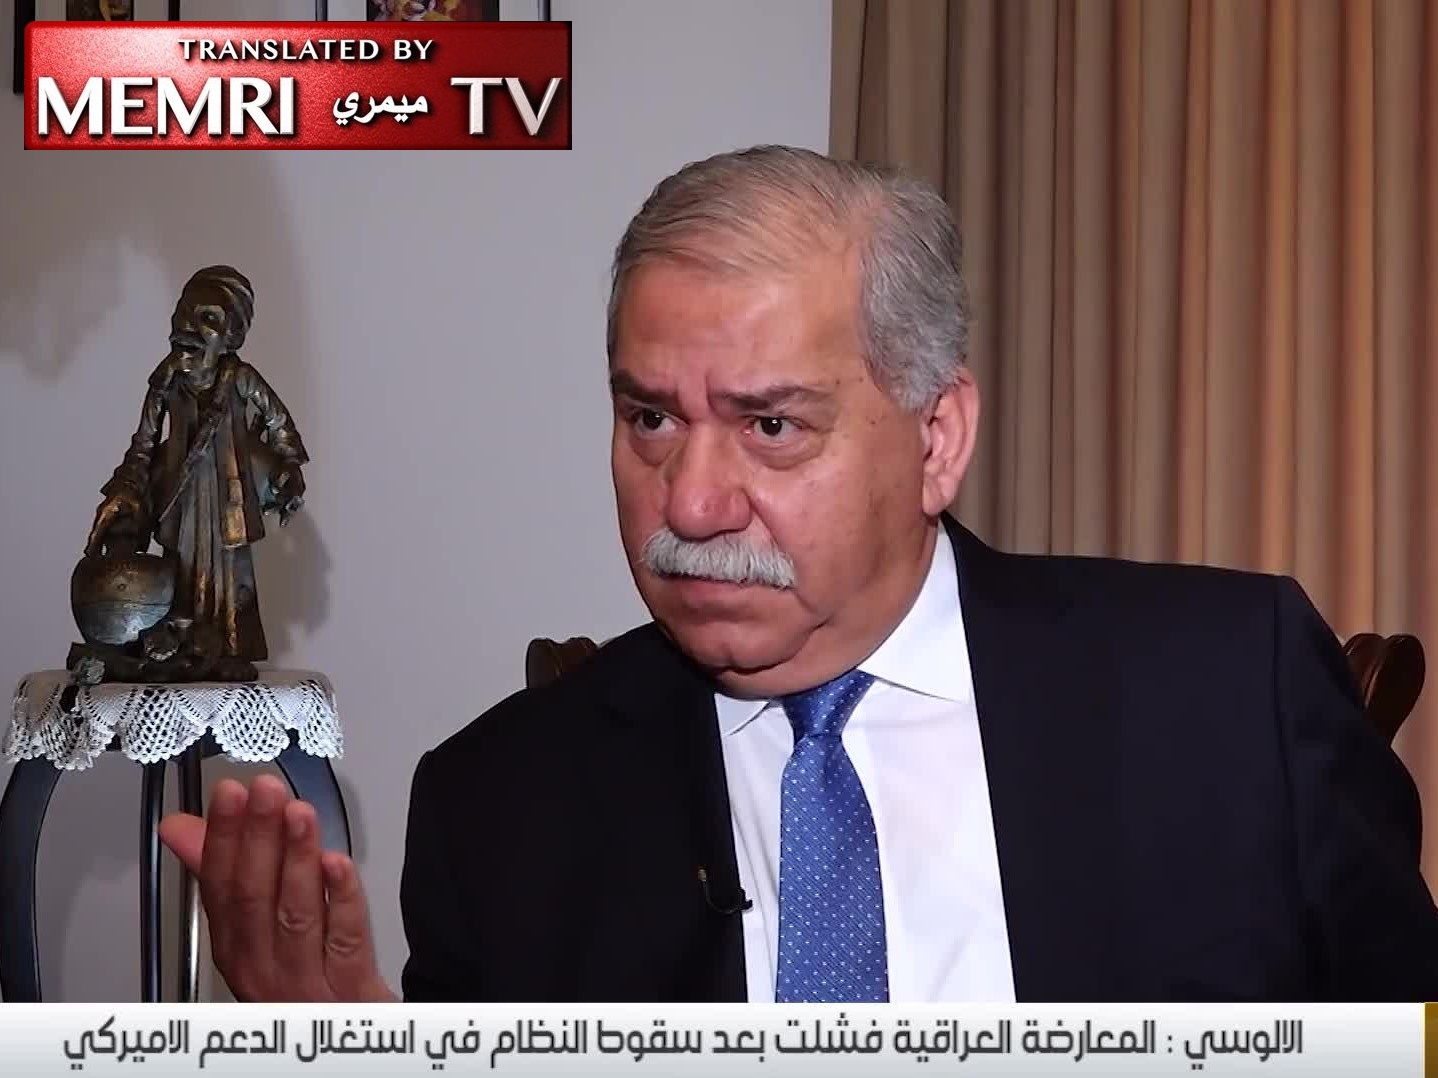 Former Iraqi MP Mithal Al-Alusi in Support of Visiting Israel: Let the Palestinians Sort out the Conflict